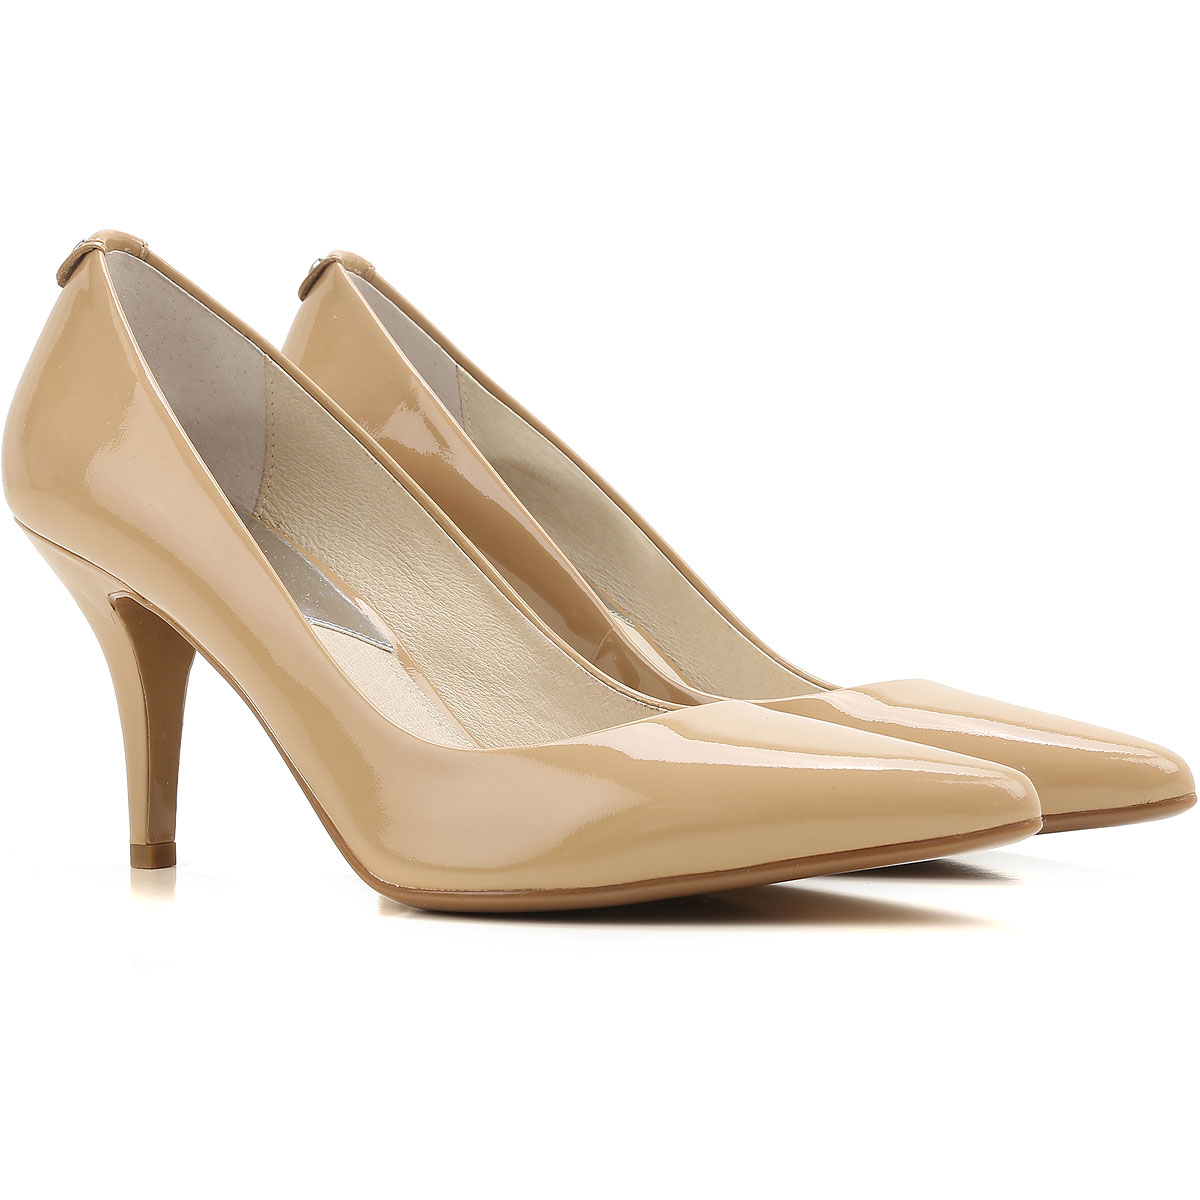 Michael Kors Pumps & High Heels for Women, Nude, Patent Leather, 2017, 10 7 USA-385960